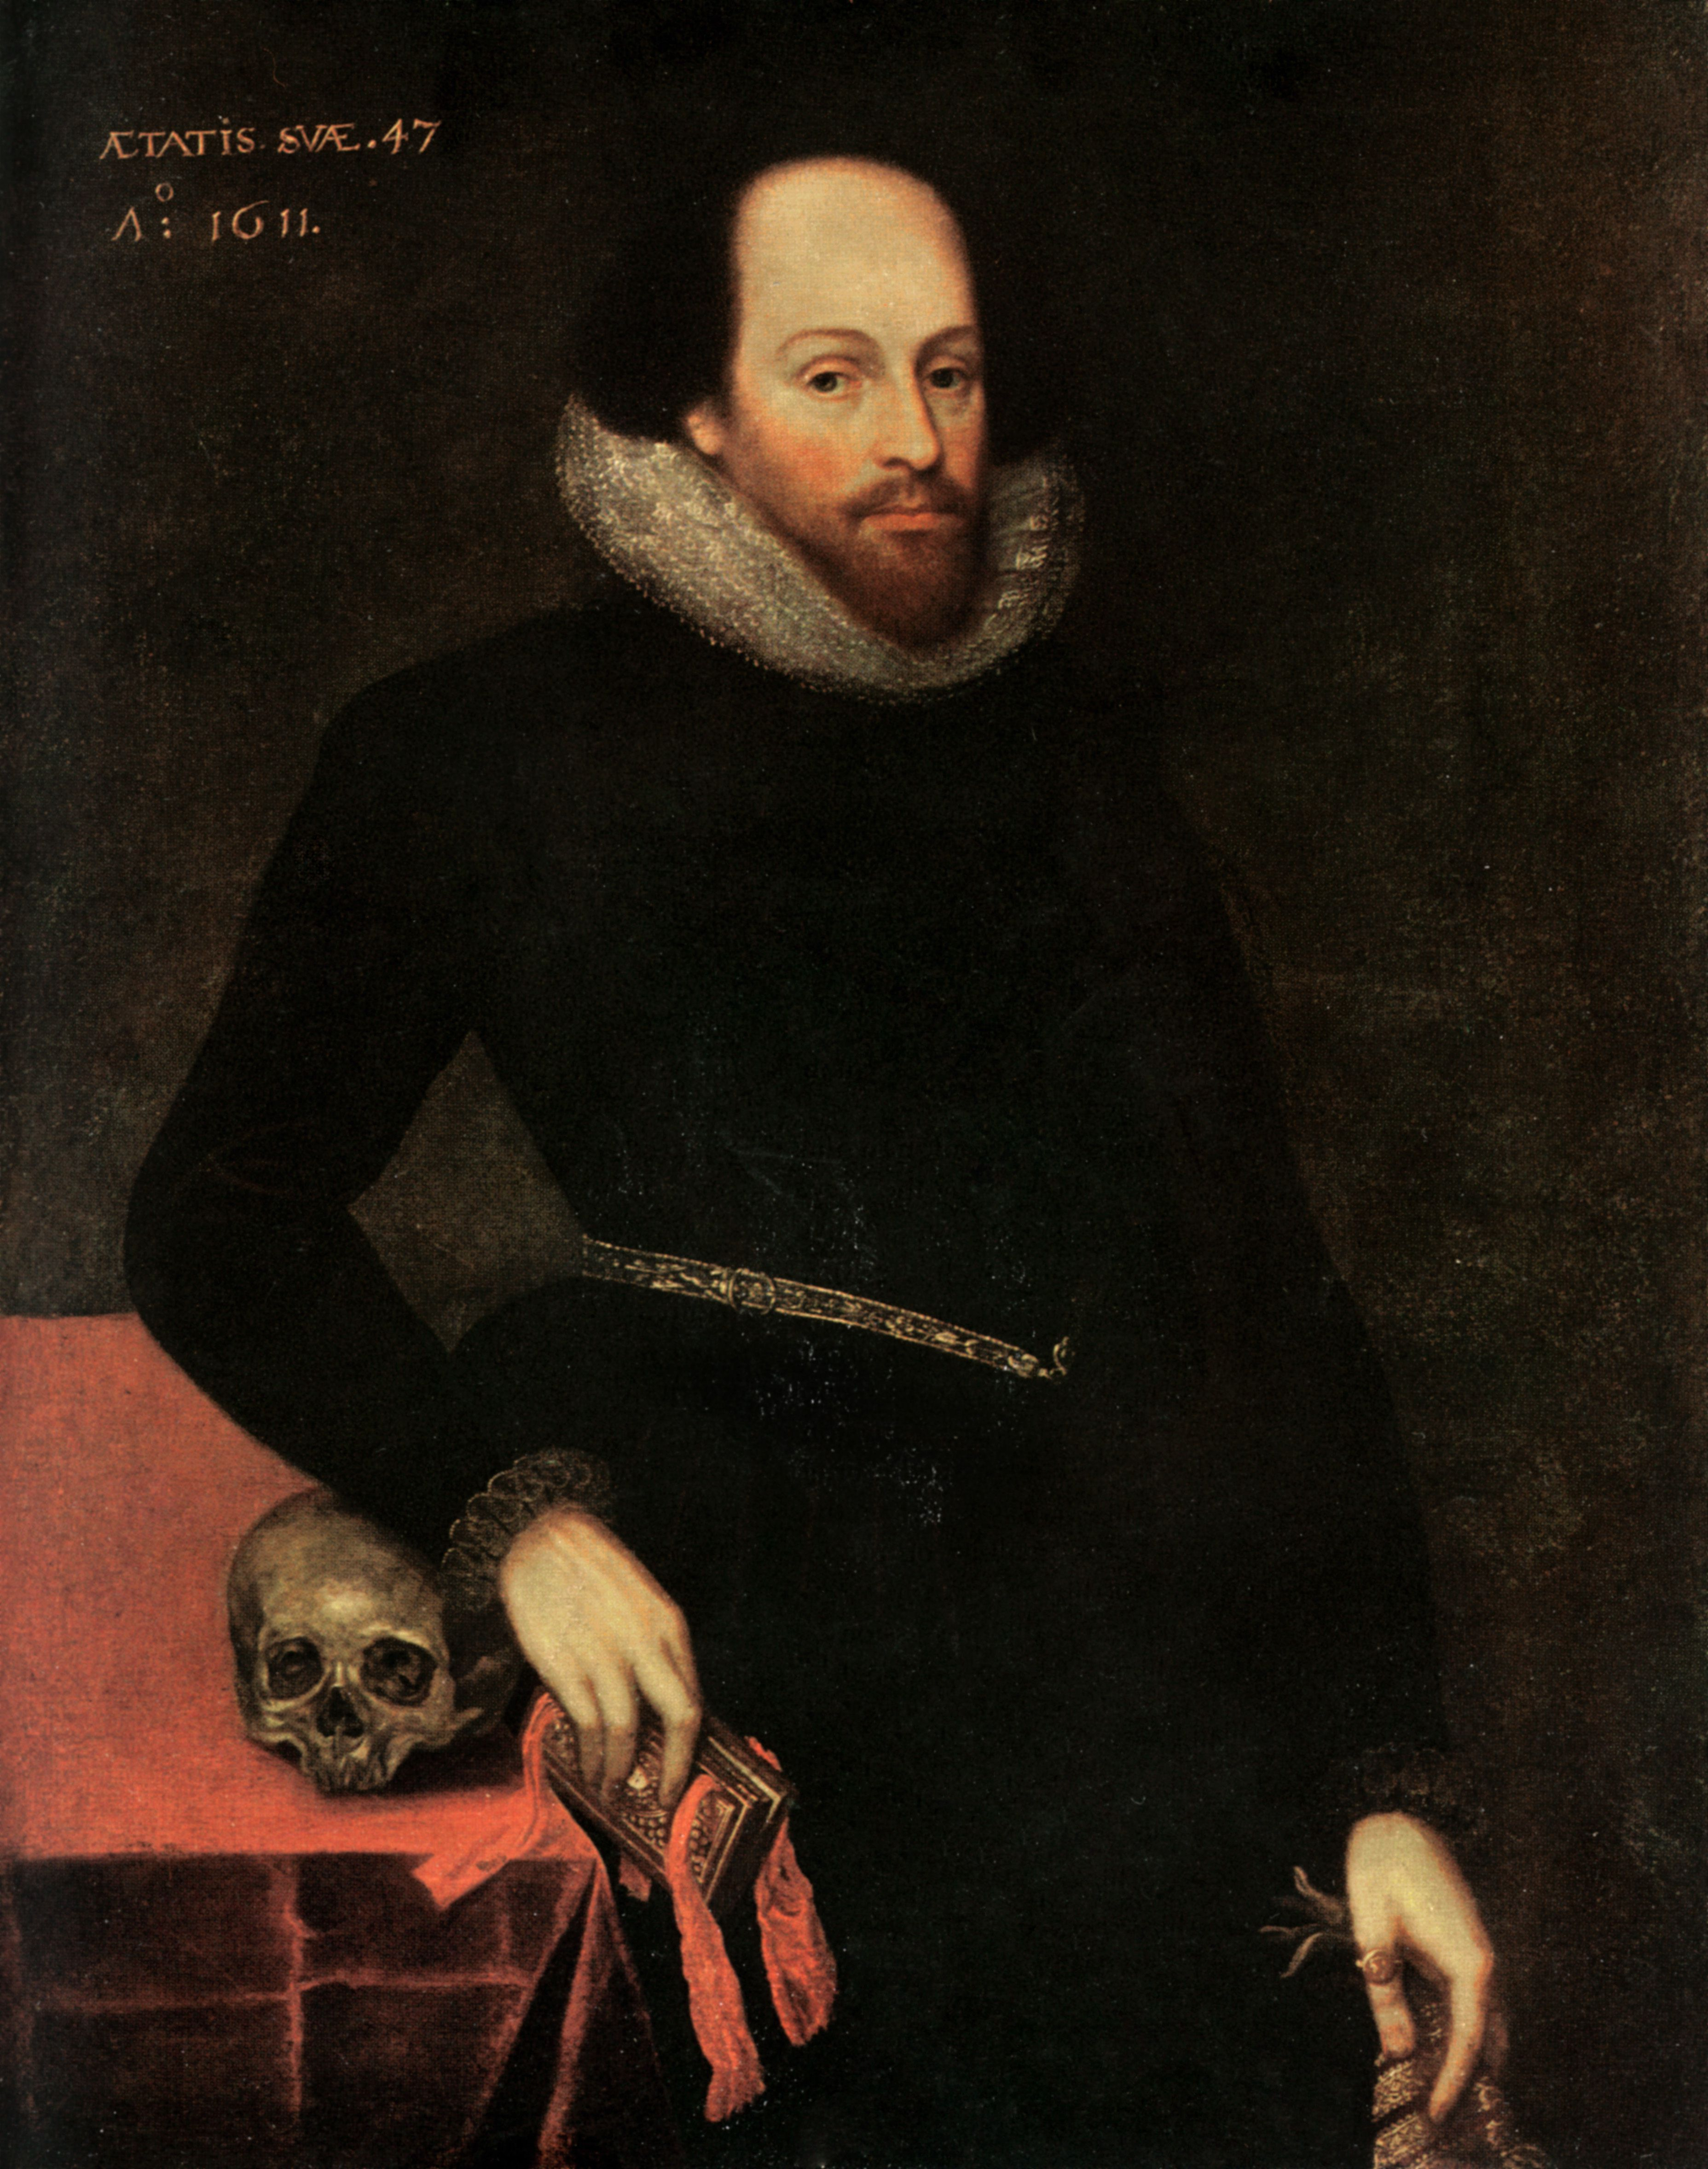 edward de vere william shakespeare Did you know that some people think england's beloved bard never existed according to one longstanding theory the literary masterpieces attributed to shakespeare were actually written by edward de vere, earl of oxford.